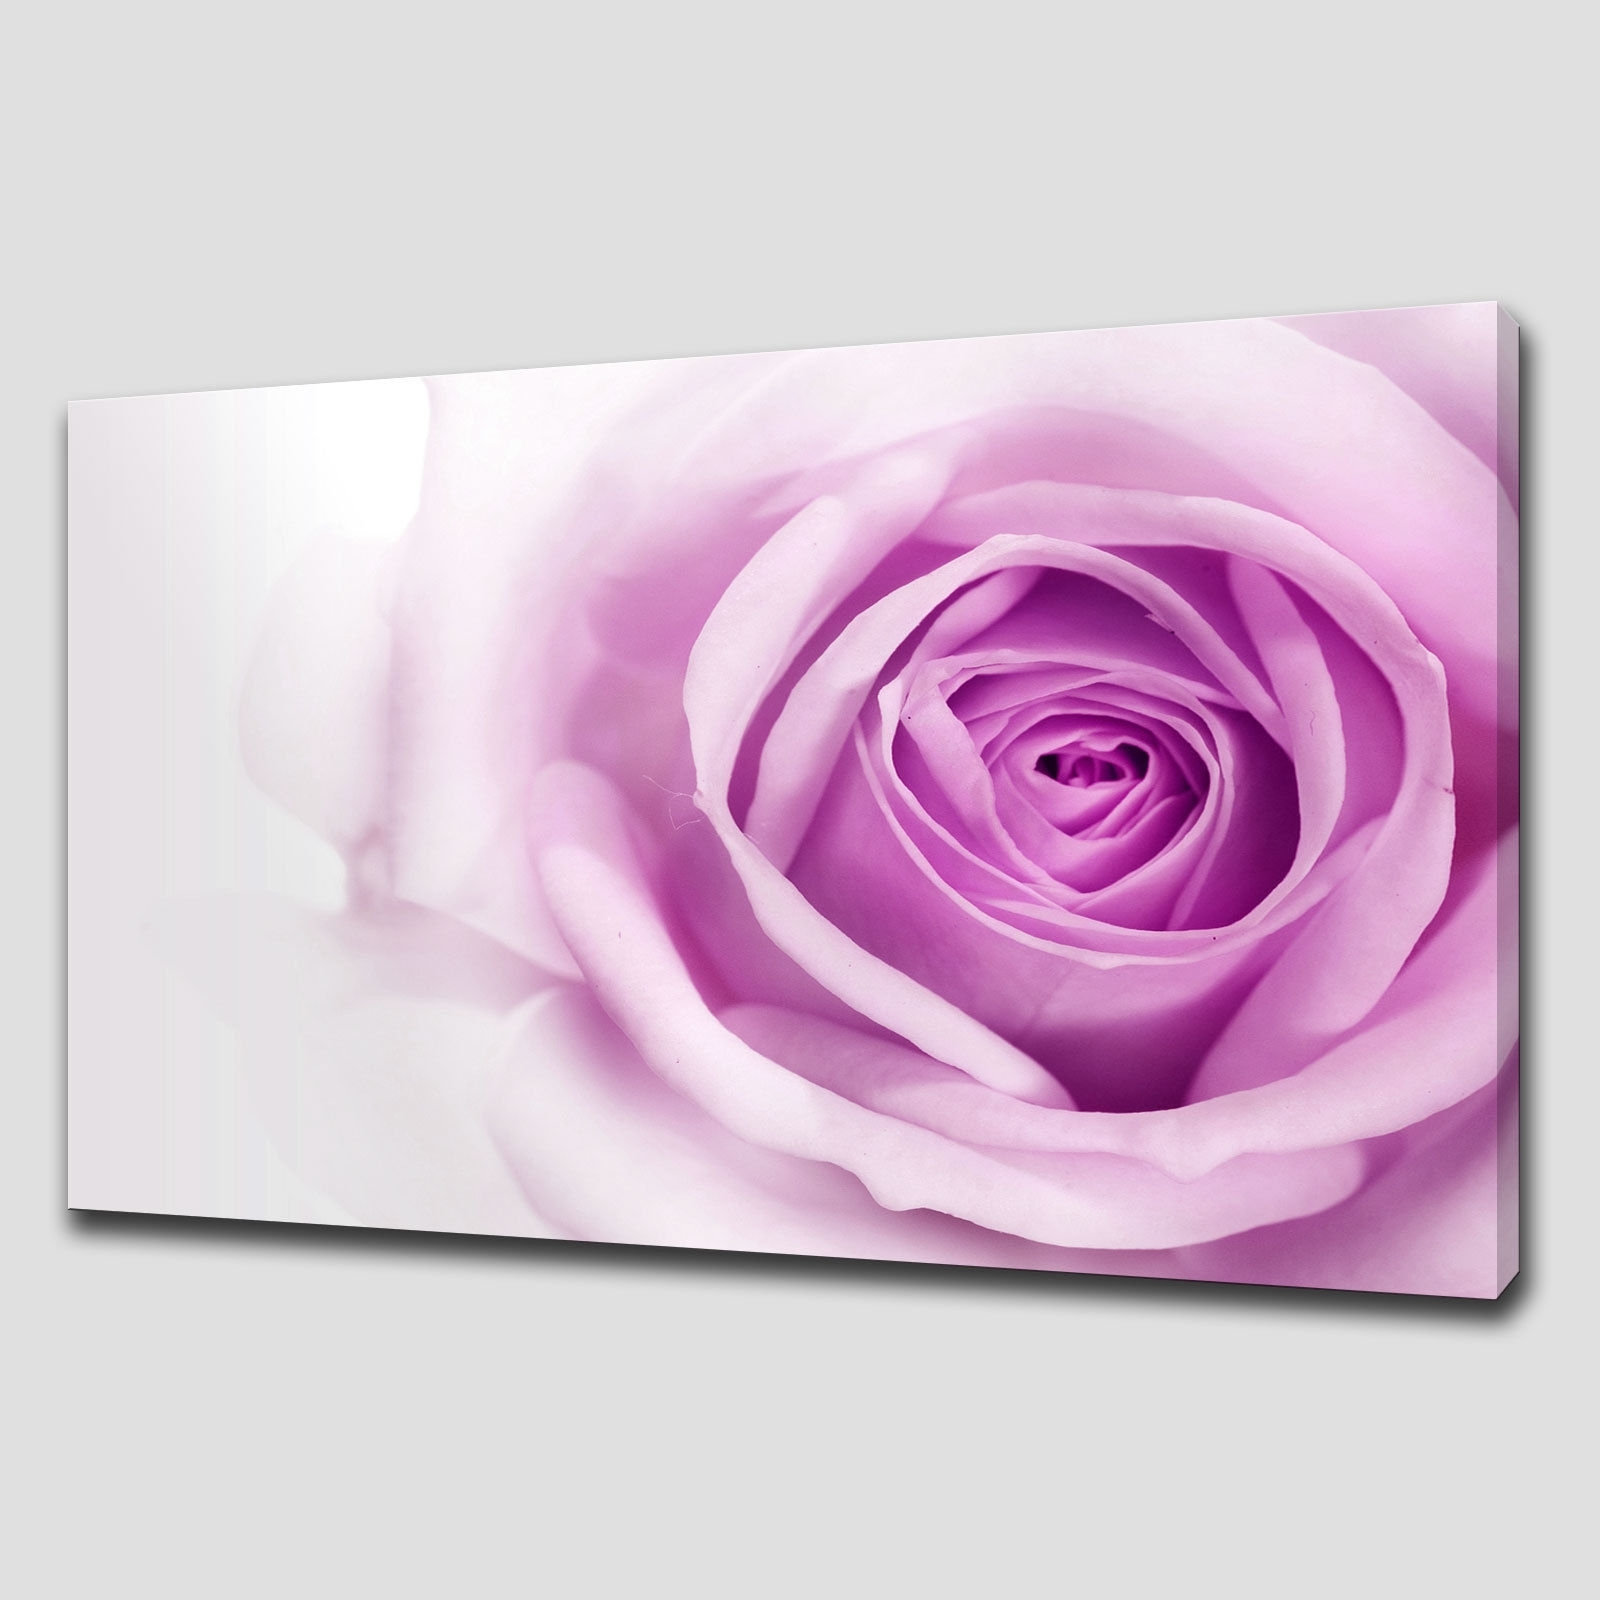 Wall Art Designs: Decor Red Rose Canvas Wall Art Large Oil Inside Most Recently Released Roses Canvas Wall Art (View 3 of 15)